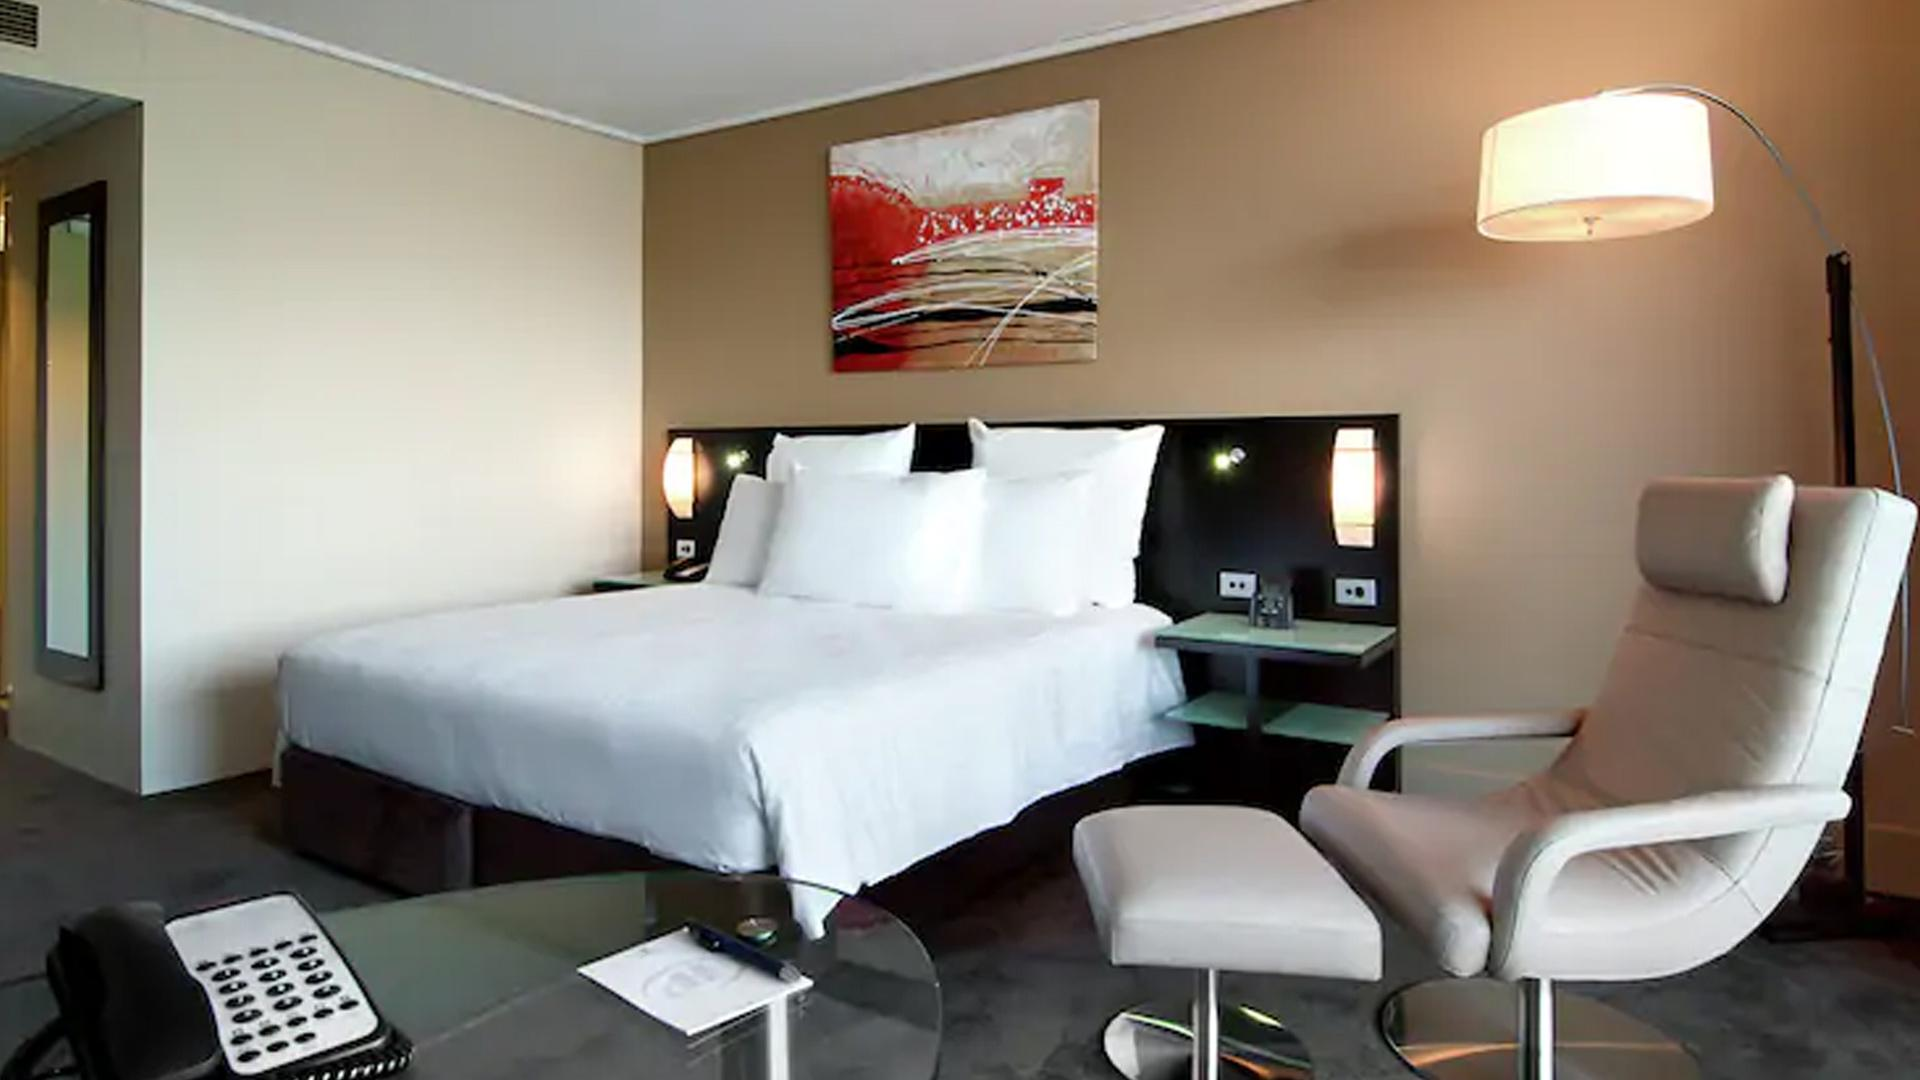 Executive Room  image 1 at Hilton Cairns by Cairns Regional, Queensland, Australia